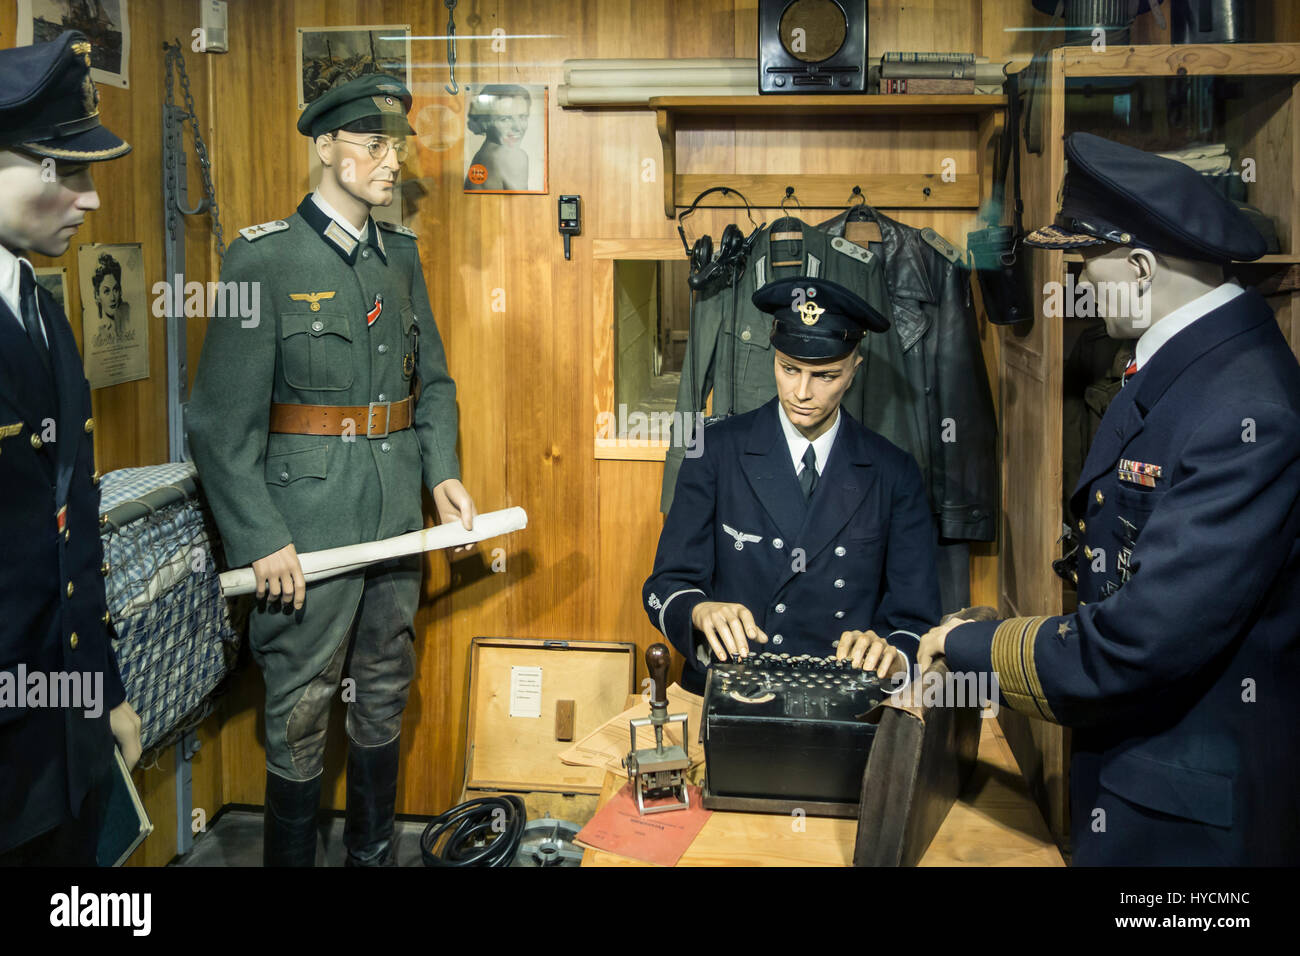 German WWII officer using 3-rotor Wehrmacht Enigma machine at Raversyde Atlantikwall / Atlantic Wall museum at Raversijde, Stock Photo